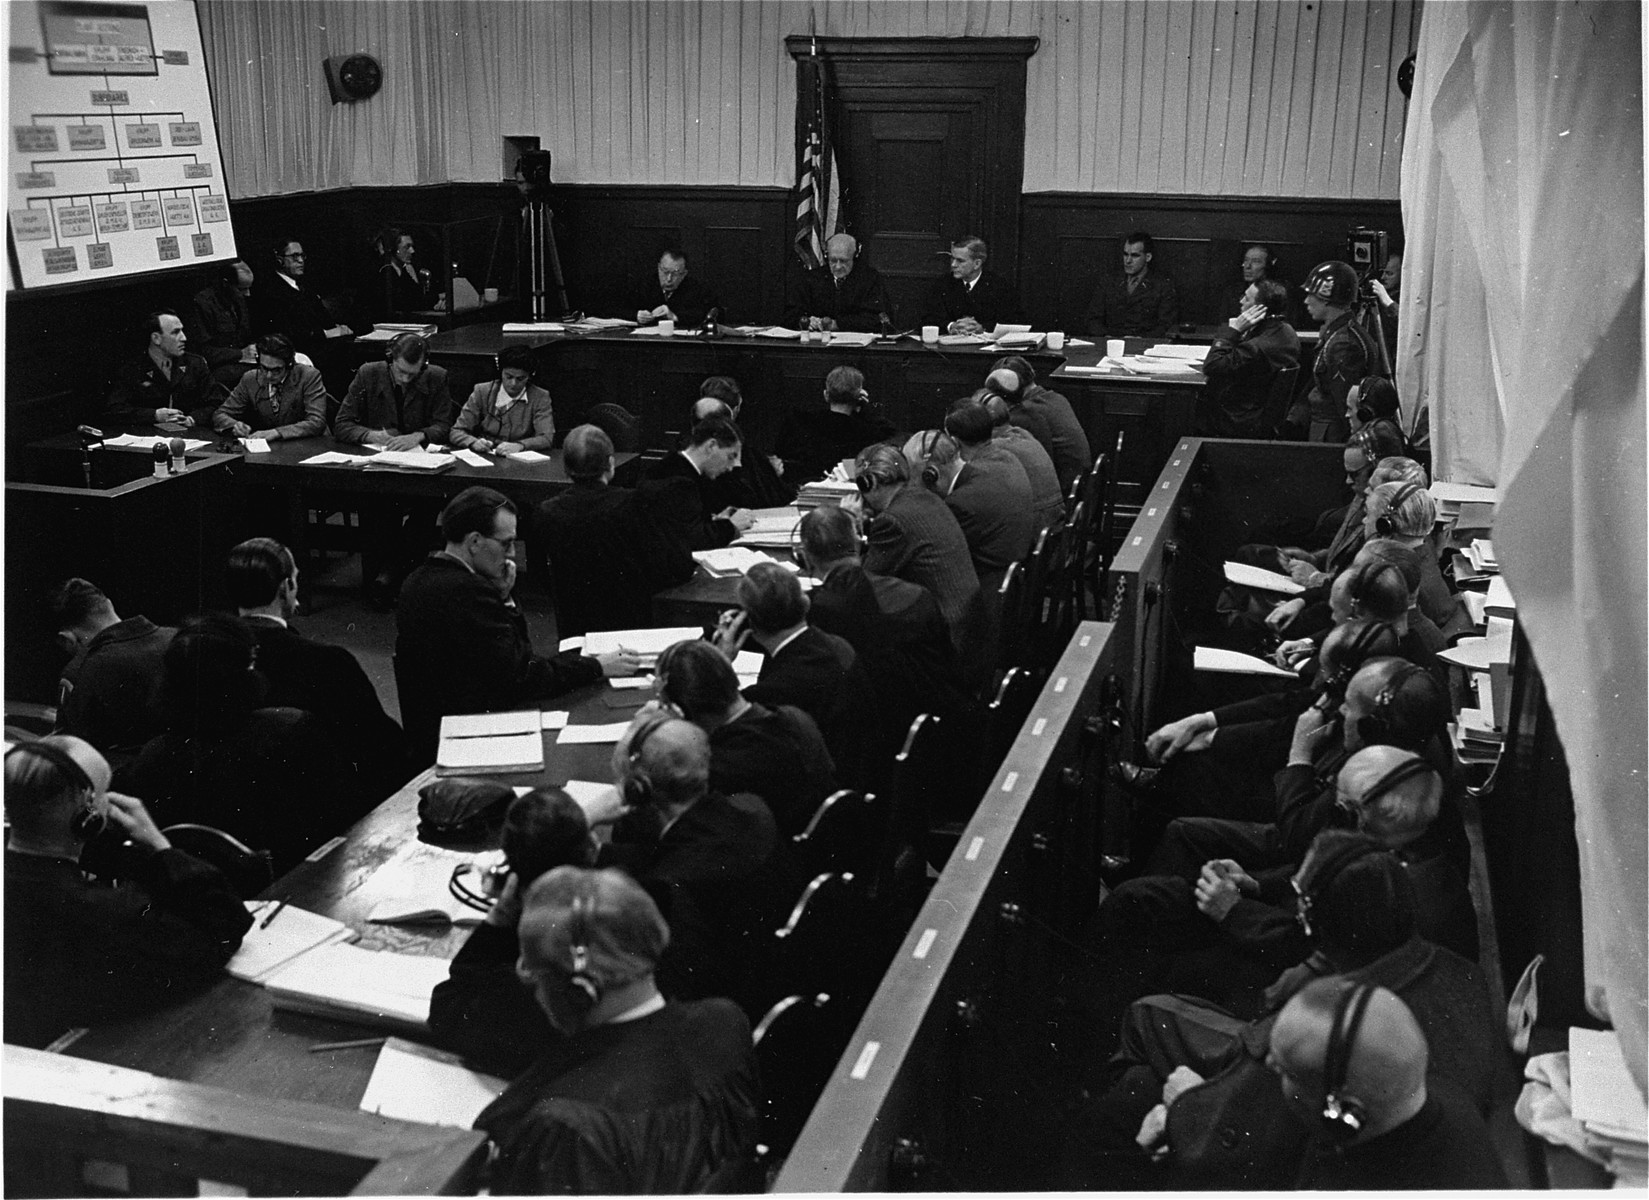 The members of the Tribunal hear evidence during the Krupp Trial.